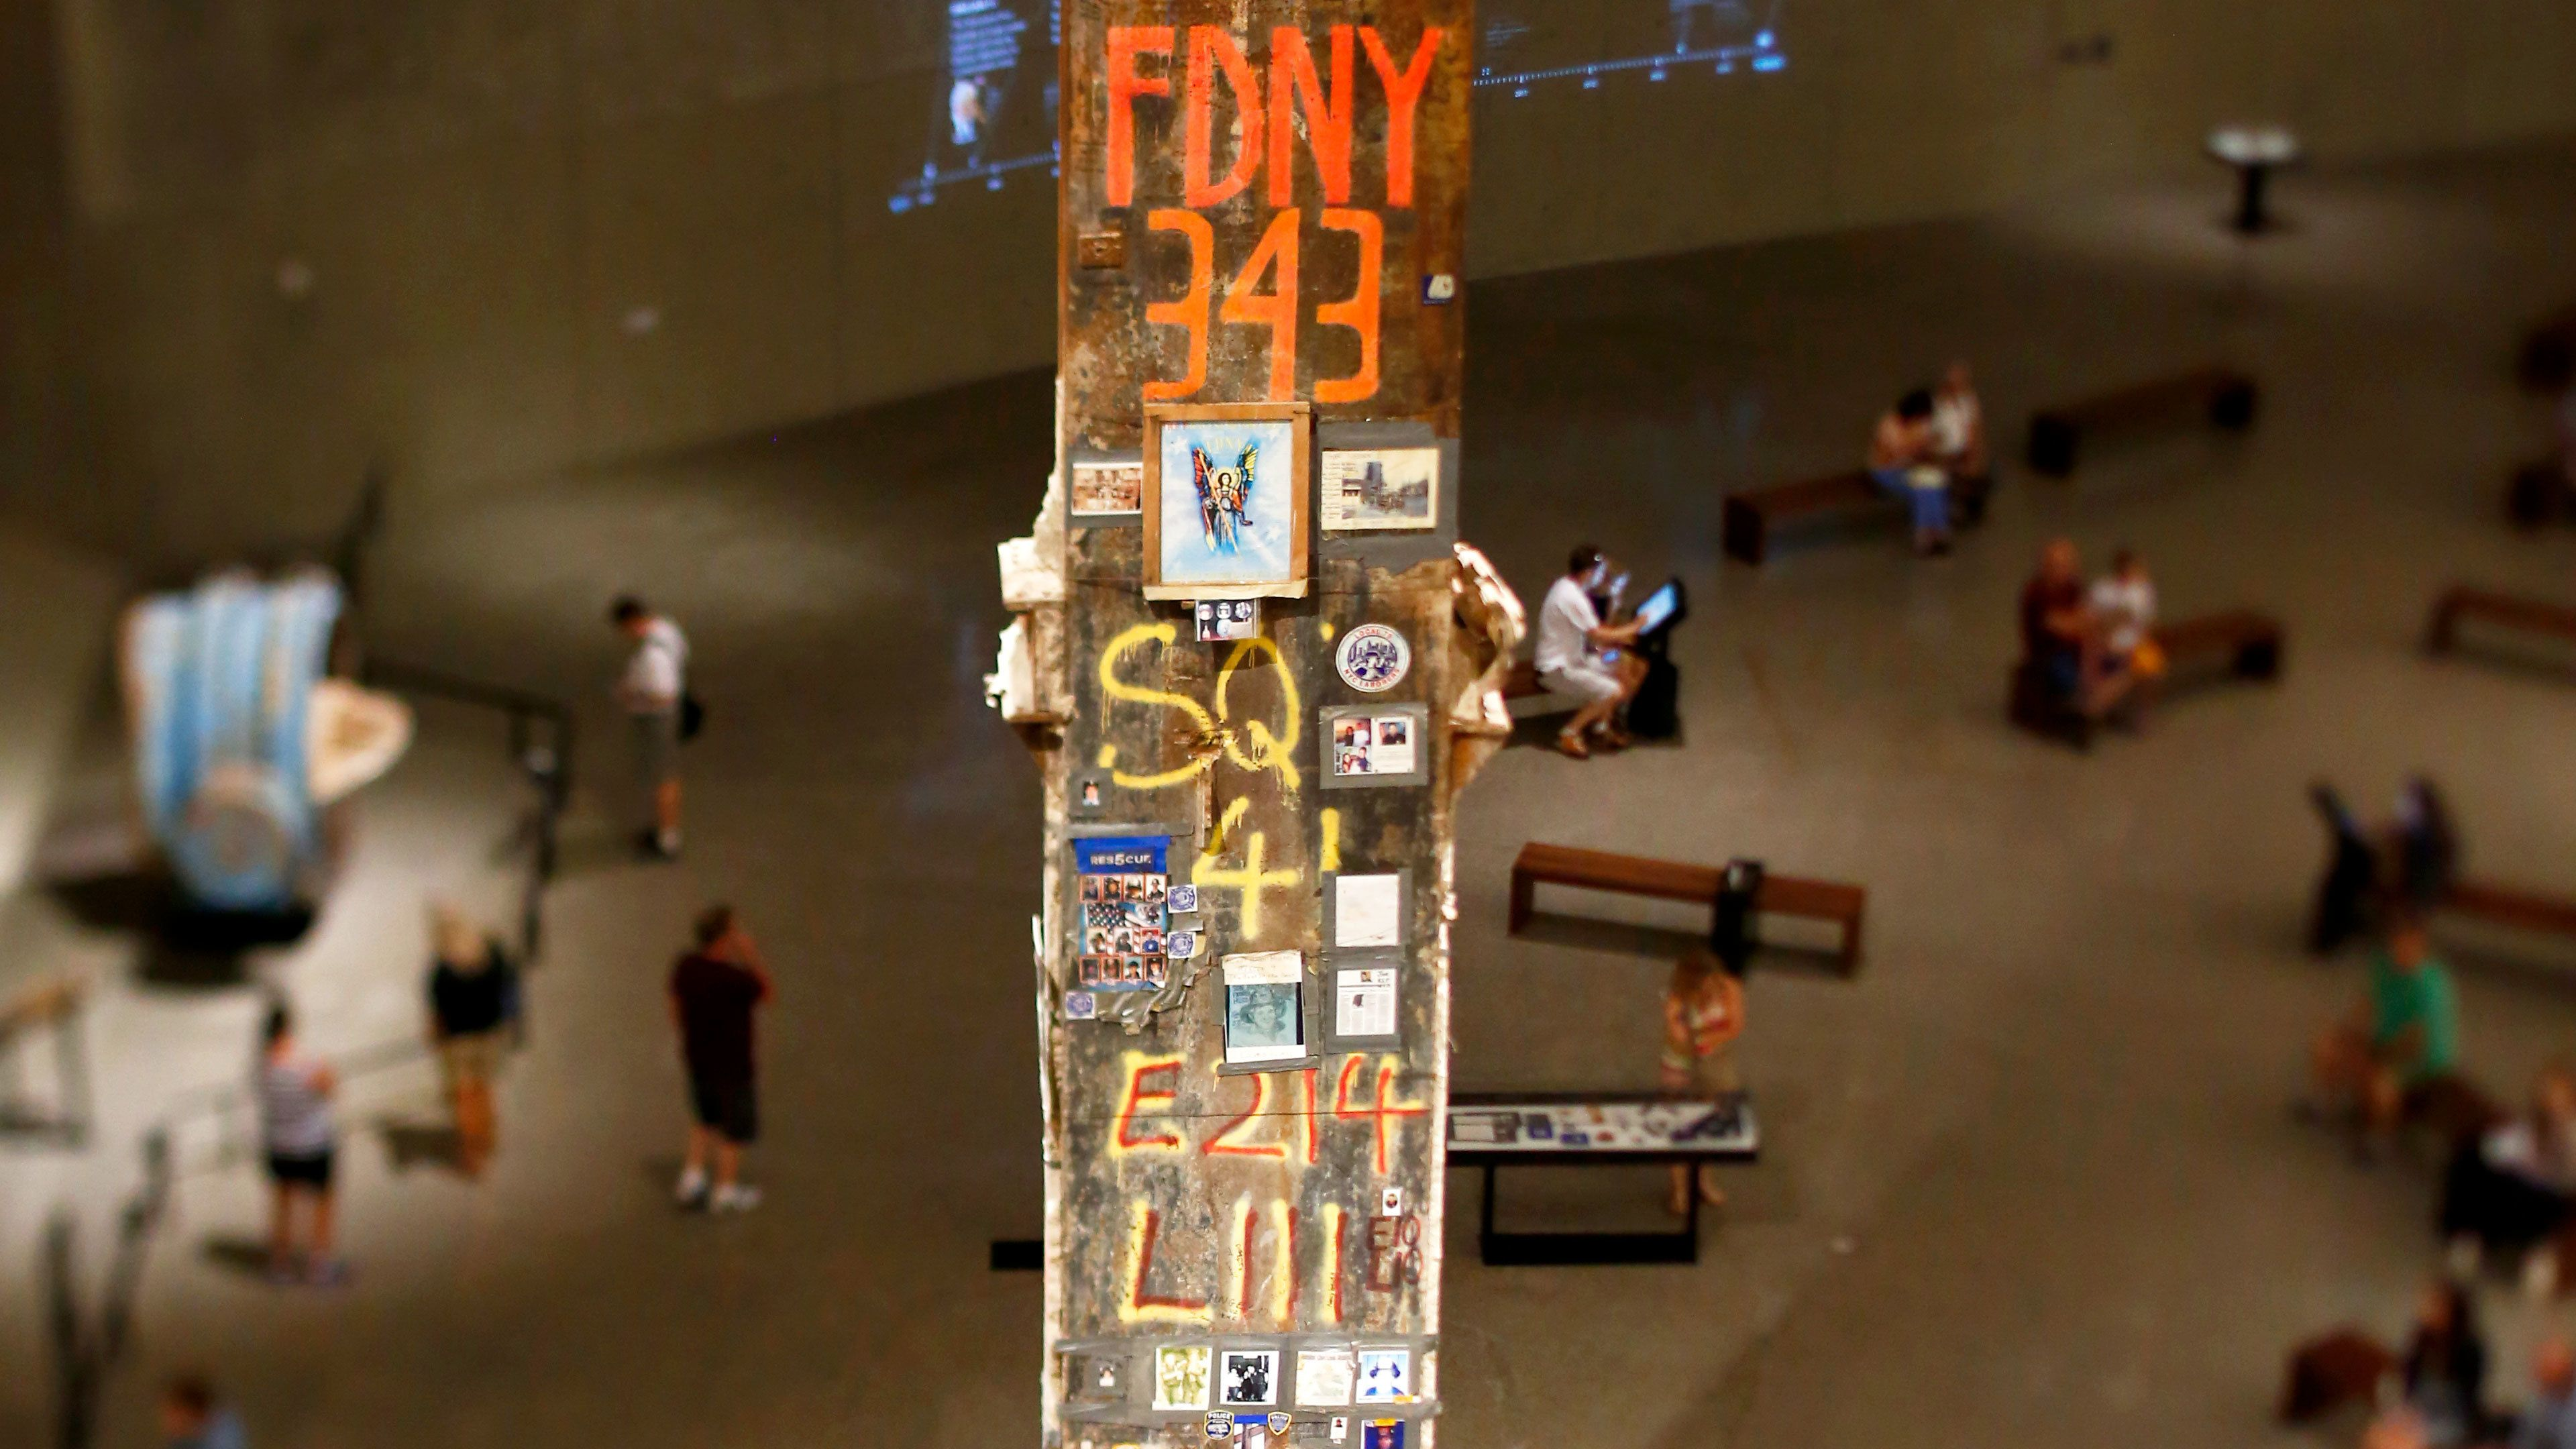 Old support from twin towers commemorating the emergency forces at the National September 11 Memorial Museum in New York